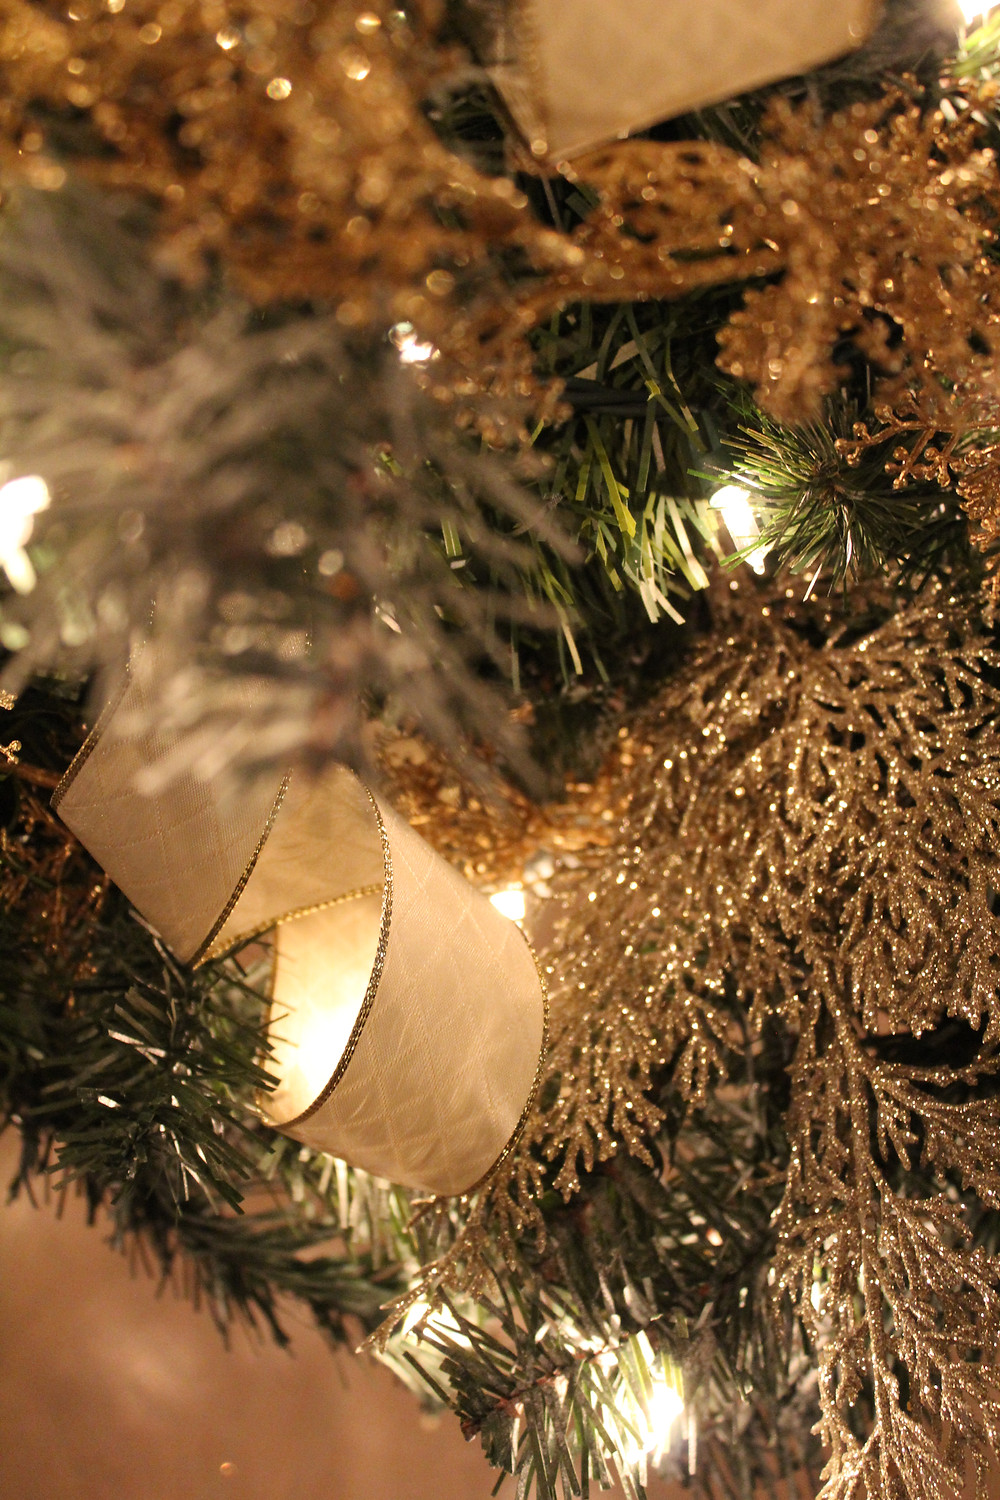 8 Money Saving Tips For Holiday Decorating To Avoid Overspending. #holidayinspo #holidaydecorating #christmasdecor